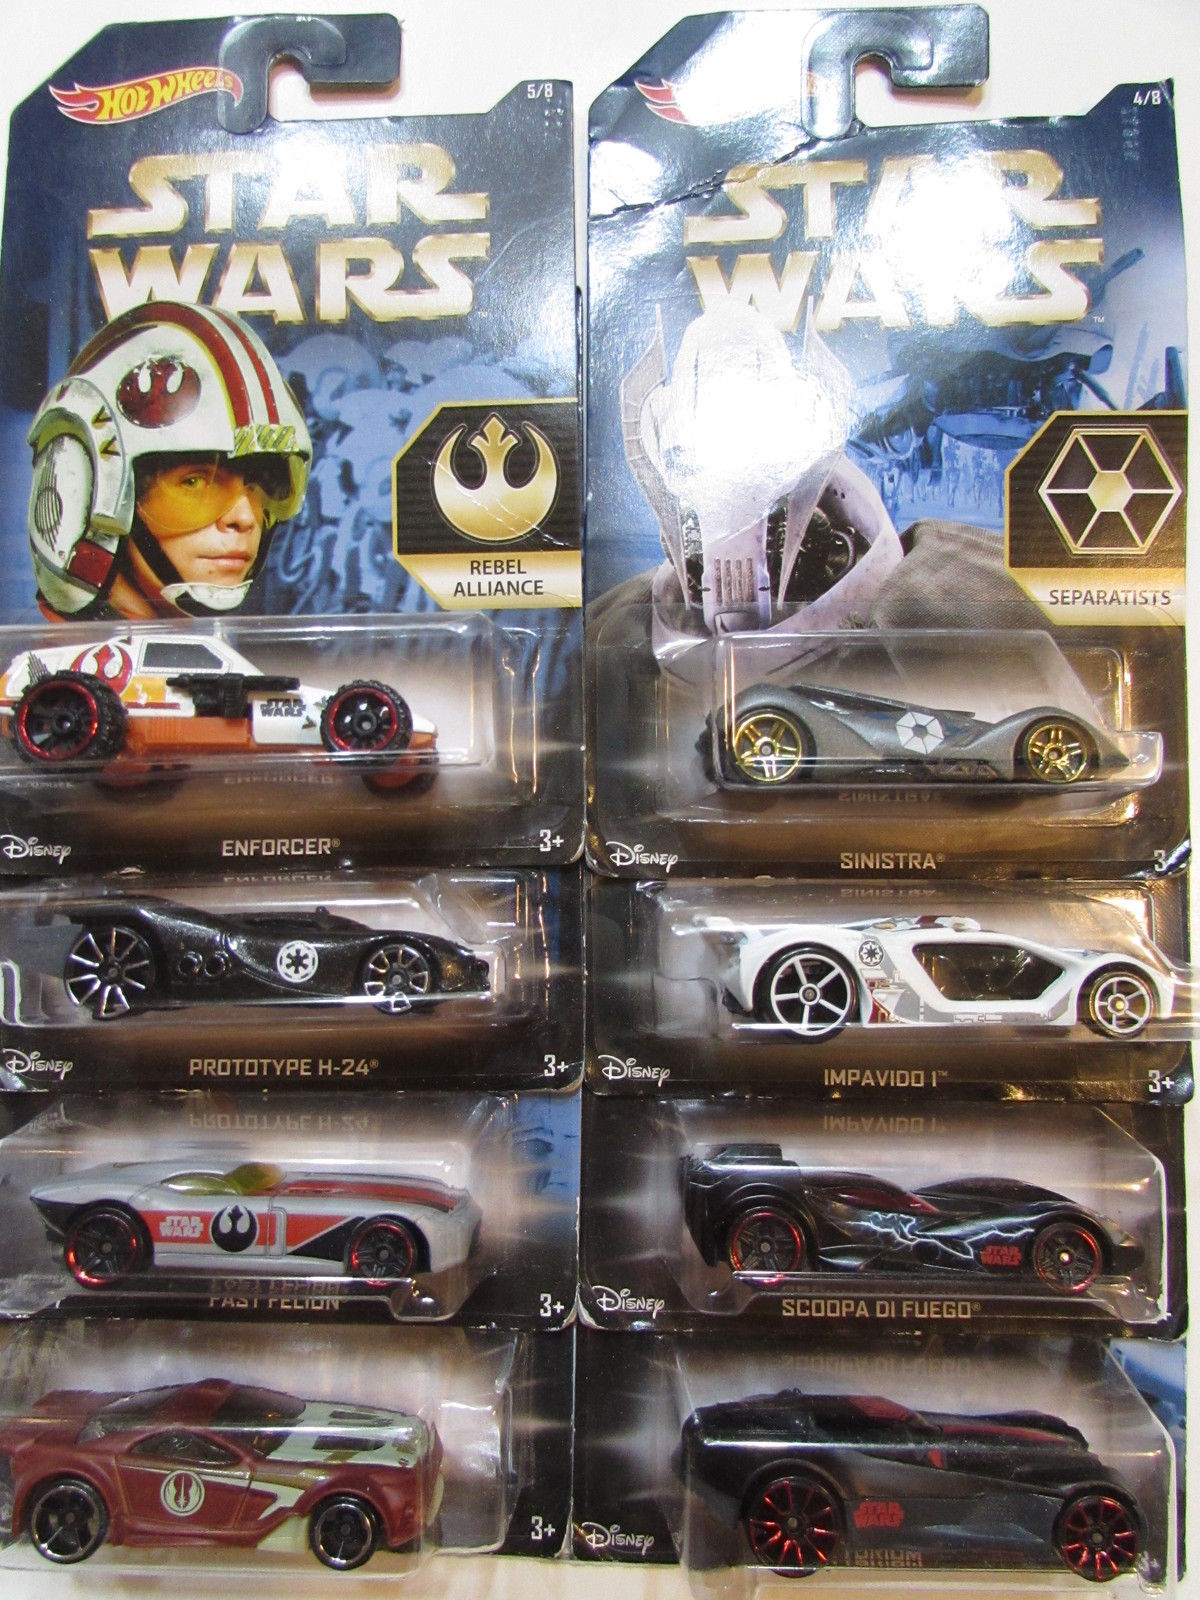 HOT WHEELS STAR WARS 2015 COMPLETE SET OF 8 SINSTRA - FELION - PROTOTYPE